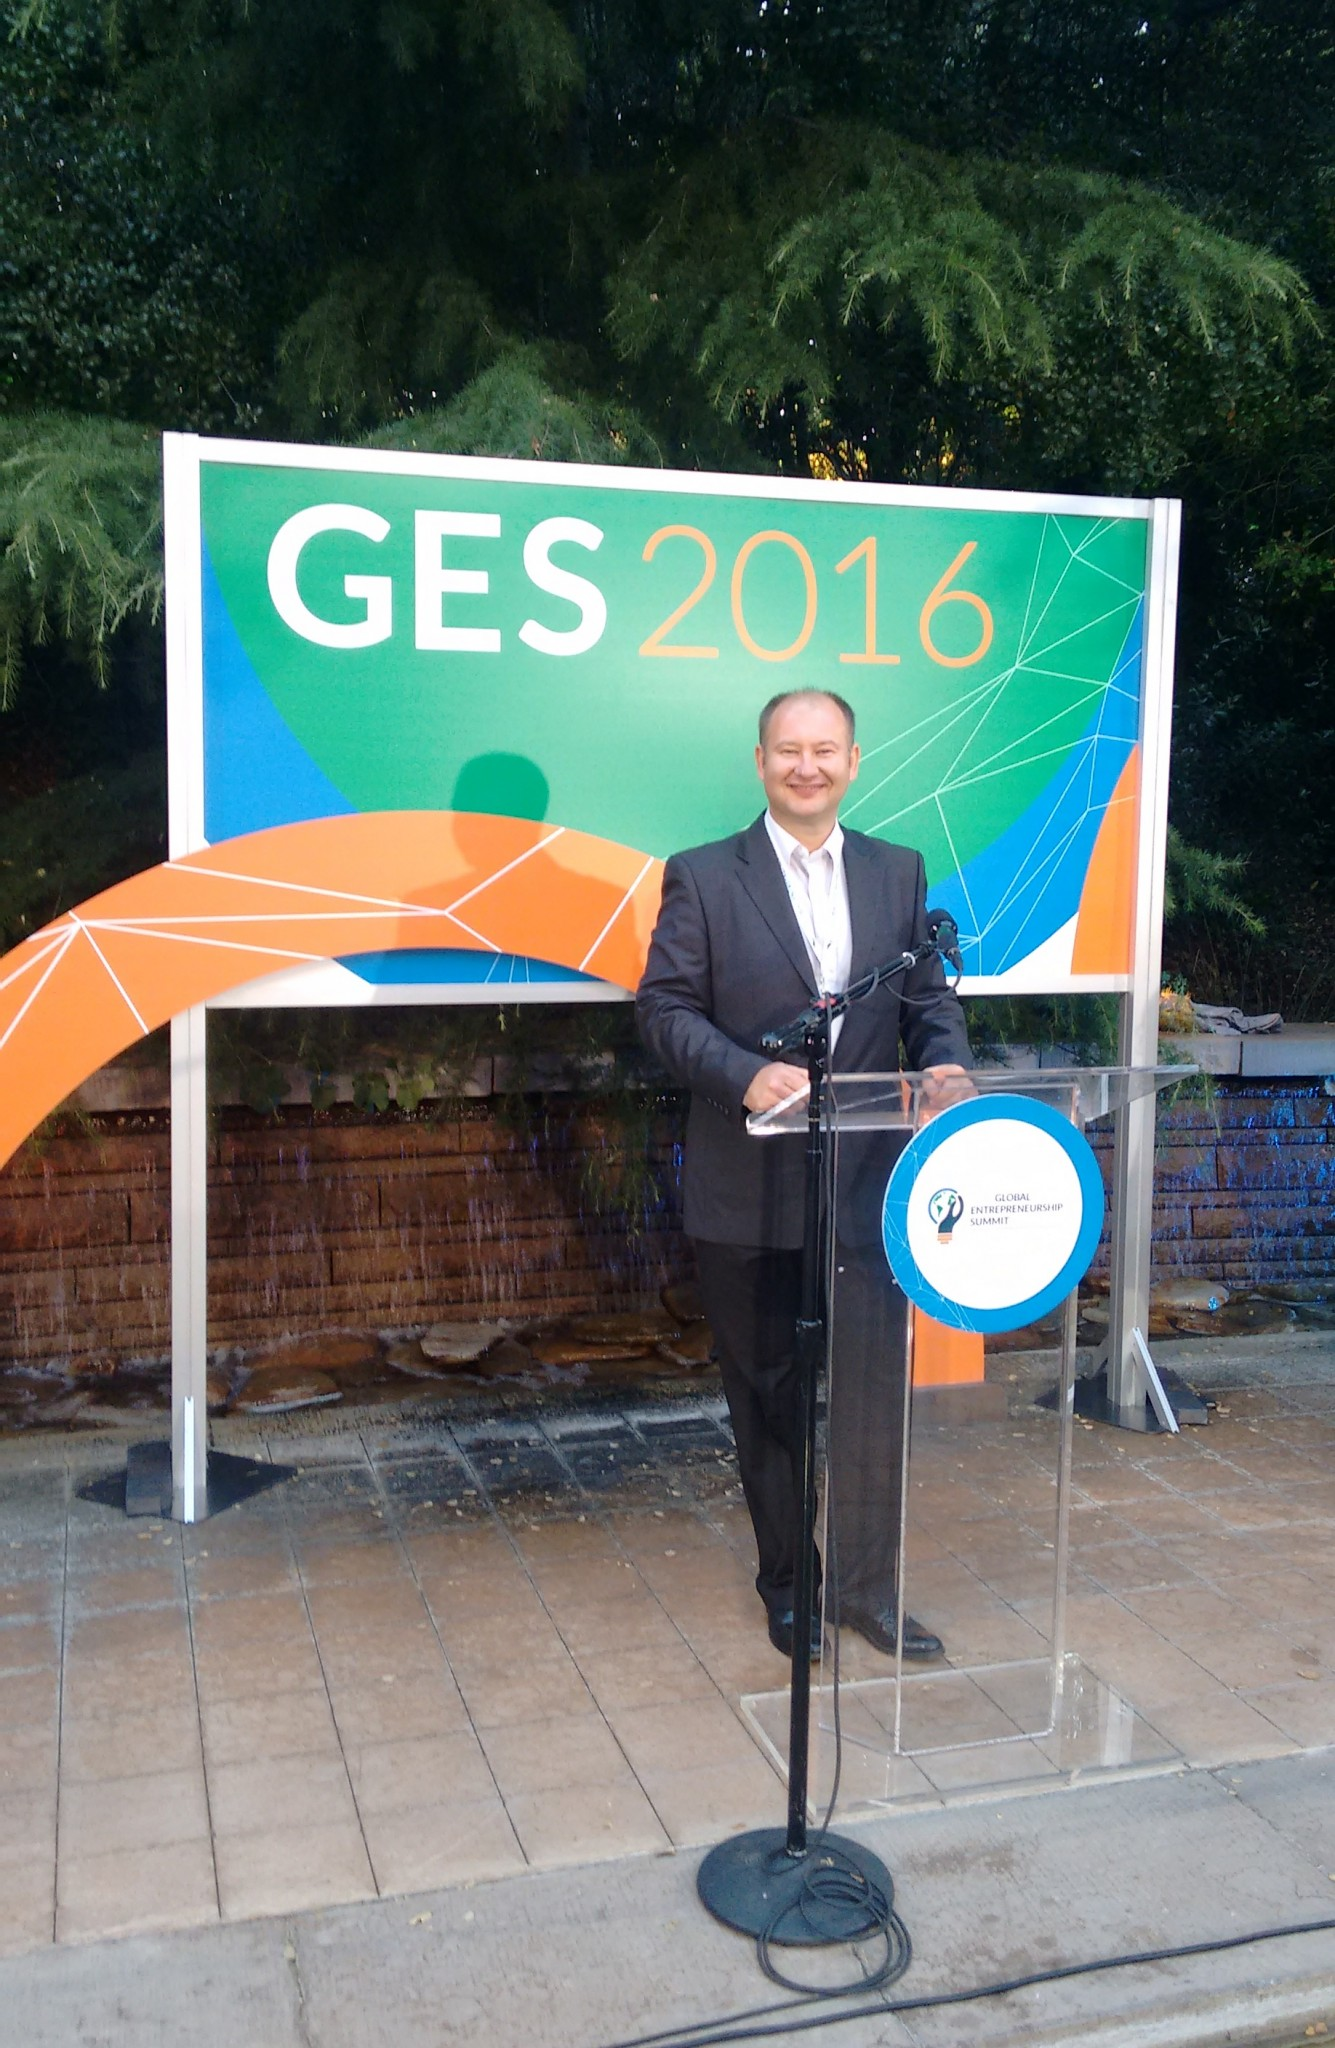 Cap to right: BwareIT's Konstantin Berezin at GES Summit 2016. Photo: courtesy